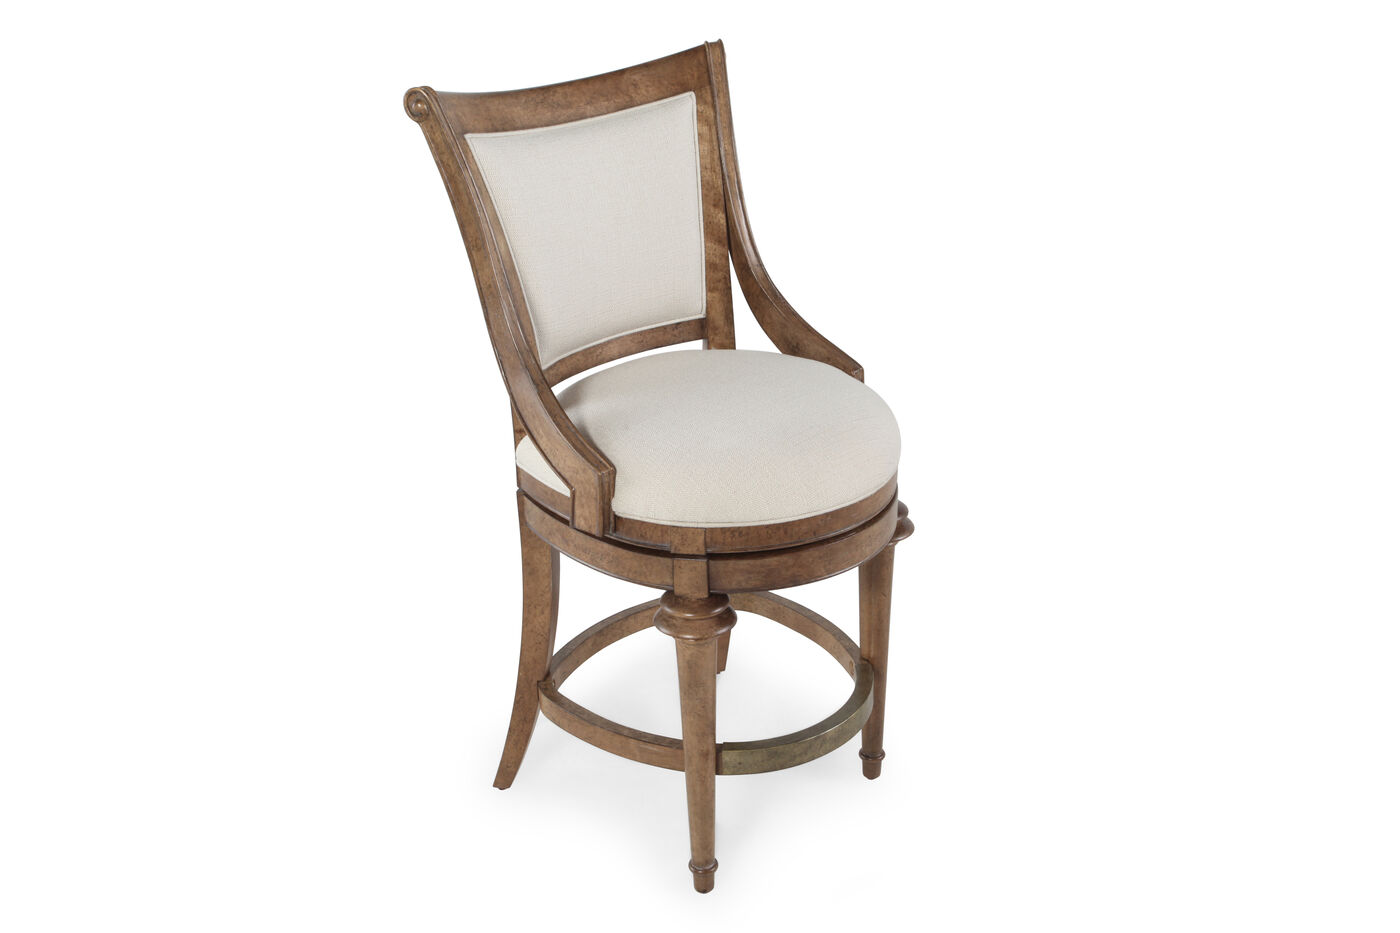 swivel 42 39 39 high dining chair in cream mathis brothers furniture. Black Bedroom Furniture Sets. Home Design Ideas